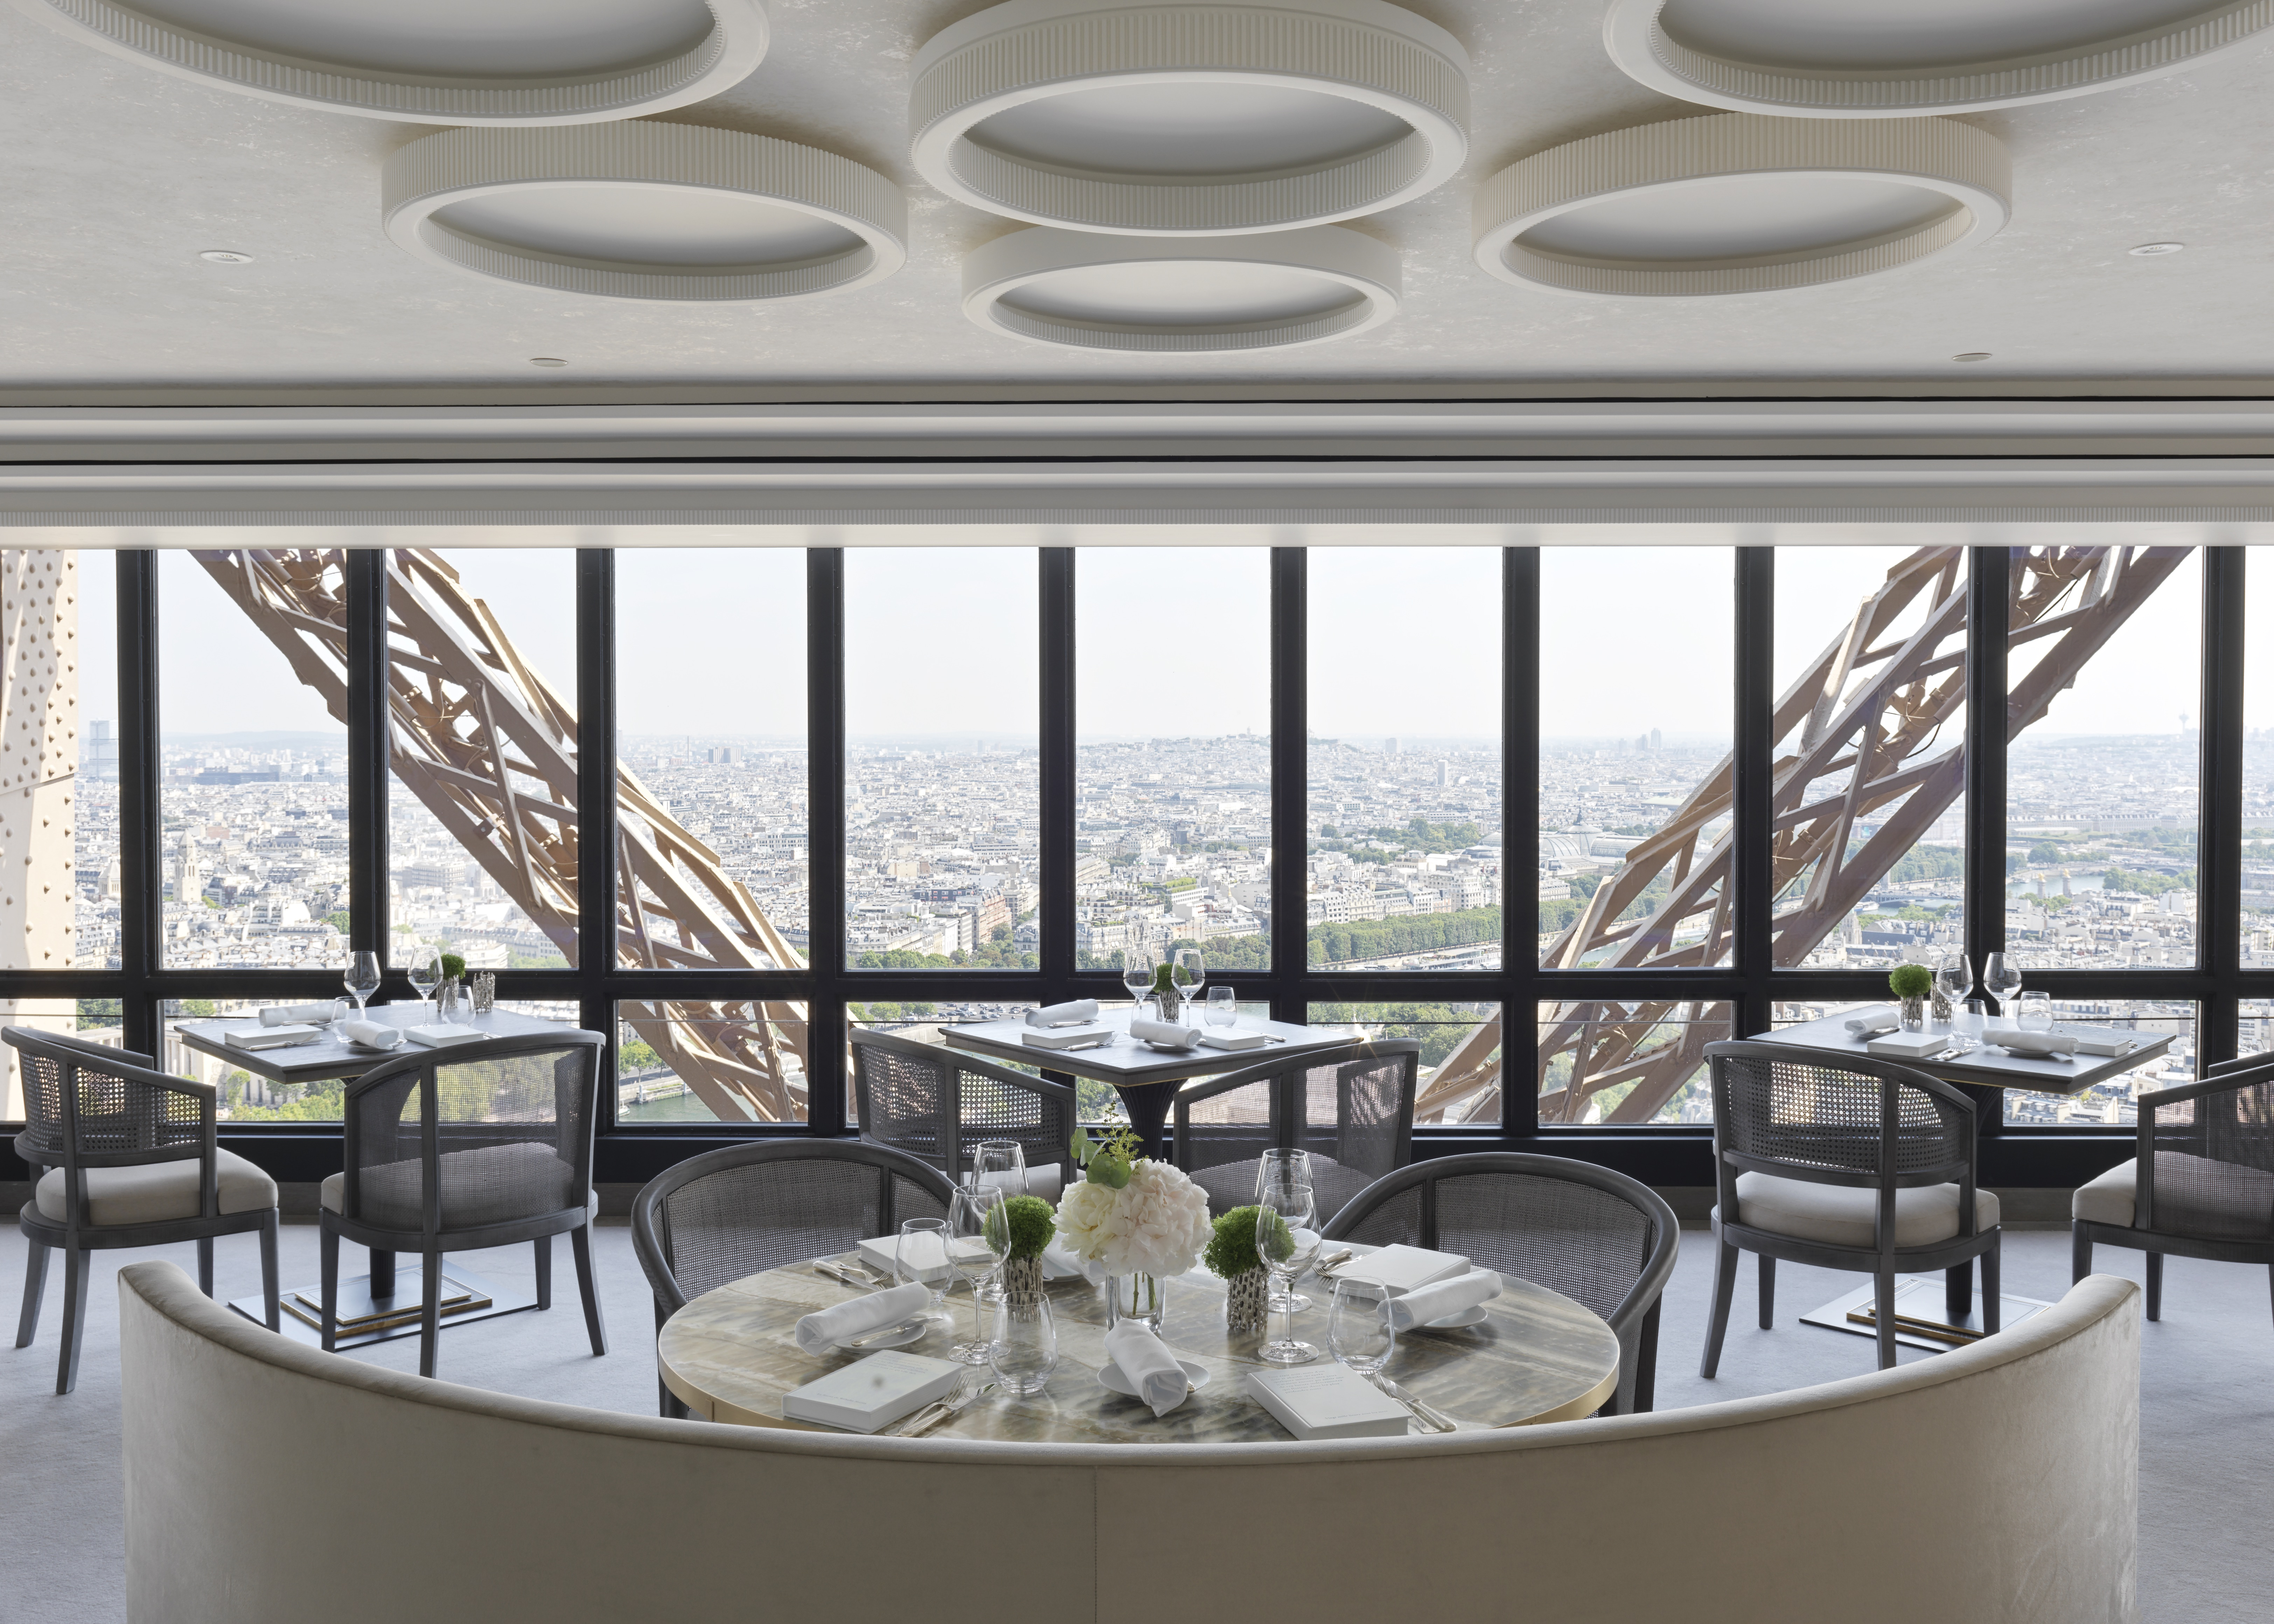 The new Jules Verne restaurant at the Eiffel Tower